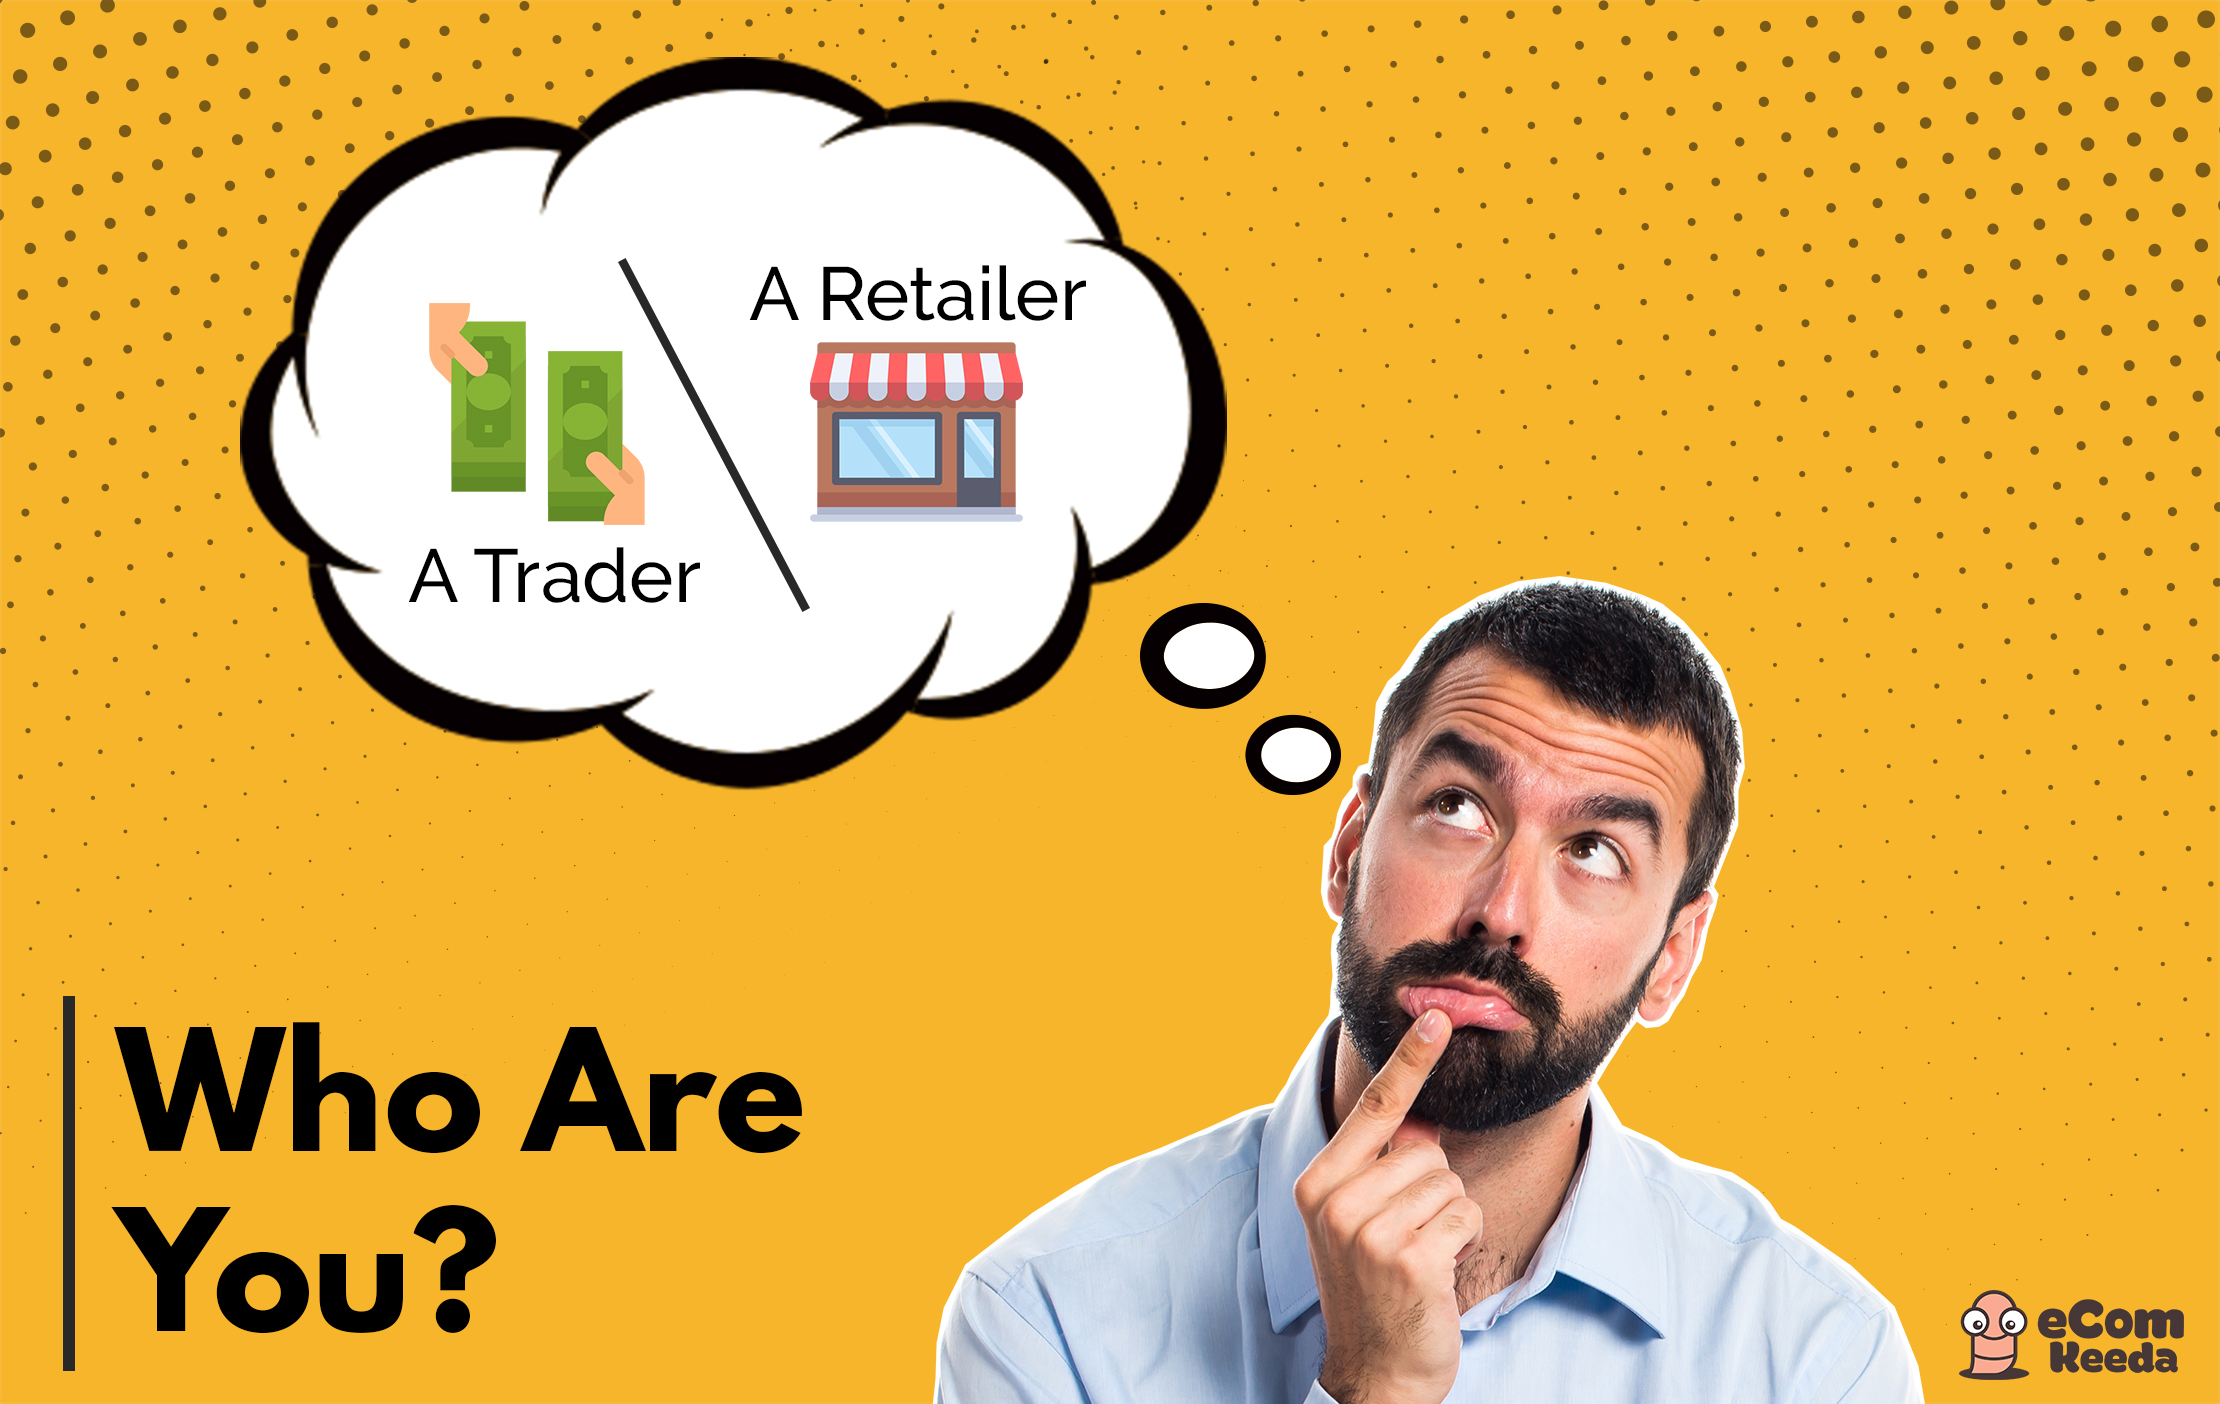 You being a trader or retailer also affects your decision to make, buy or get on rent an eCommerce technology